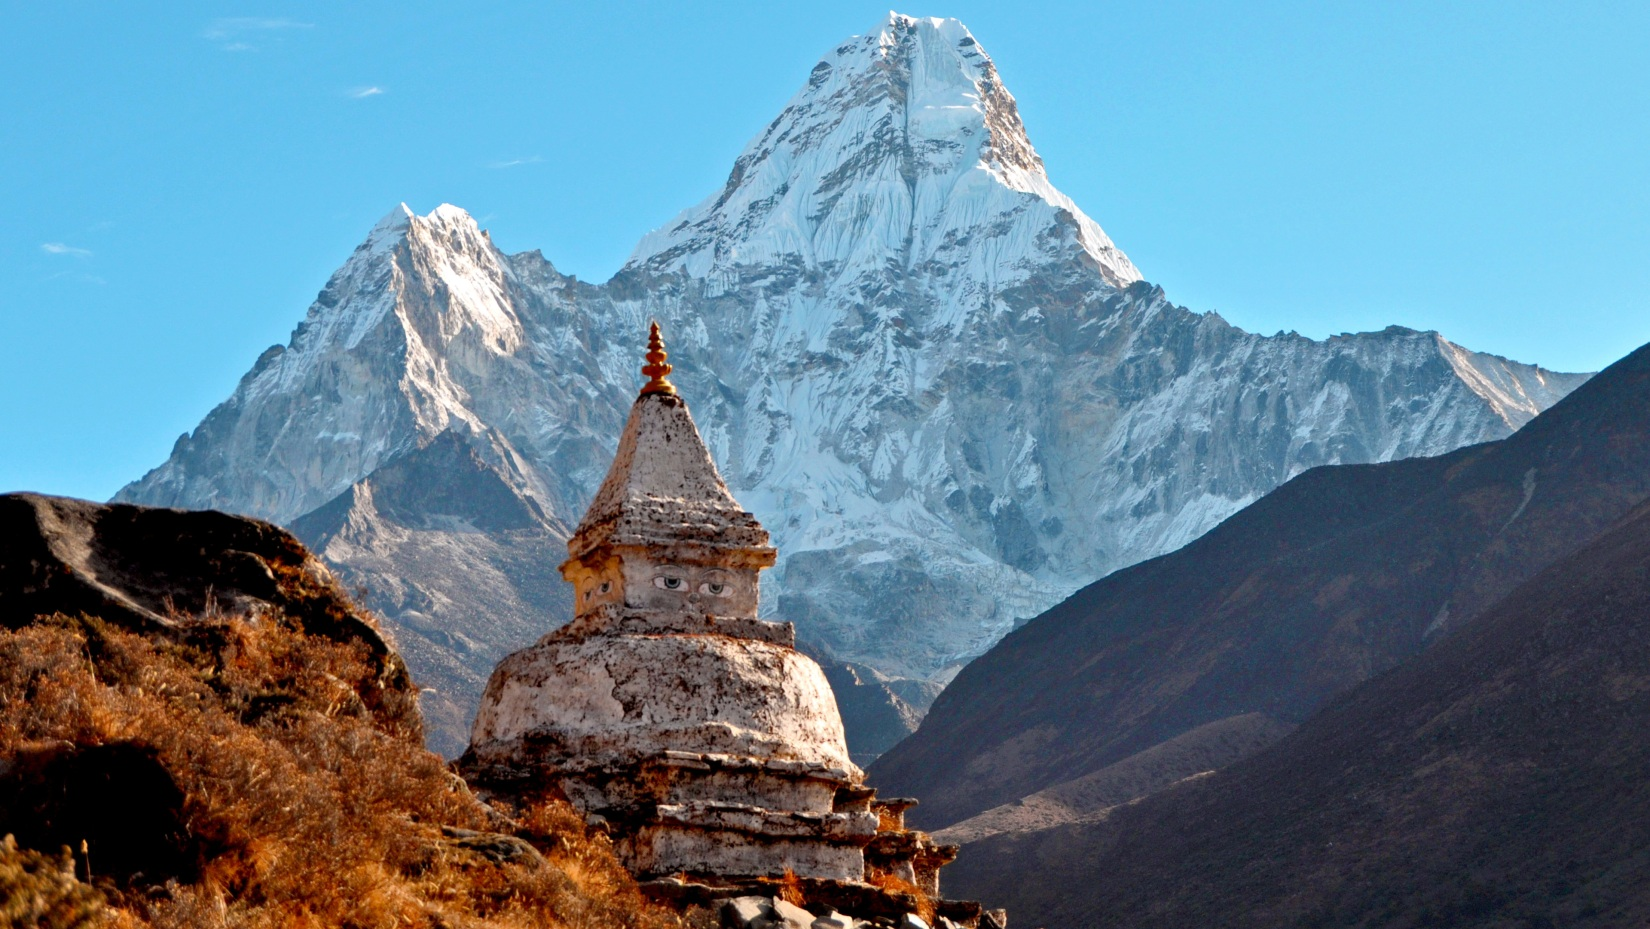 AMA DABLAM EXPEDITION (6 814M)